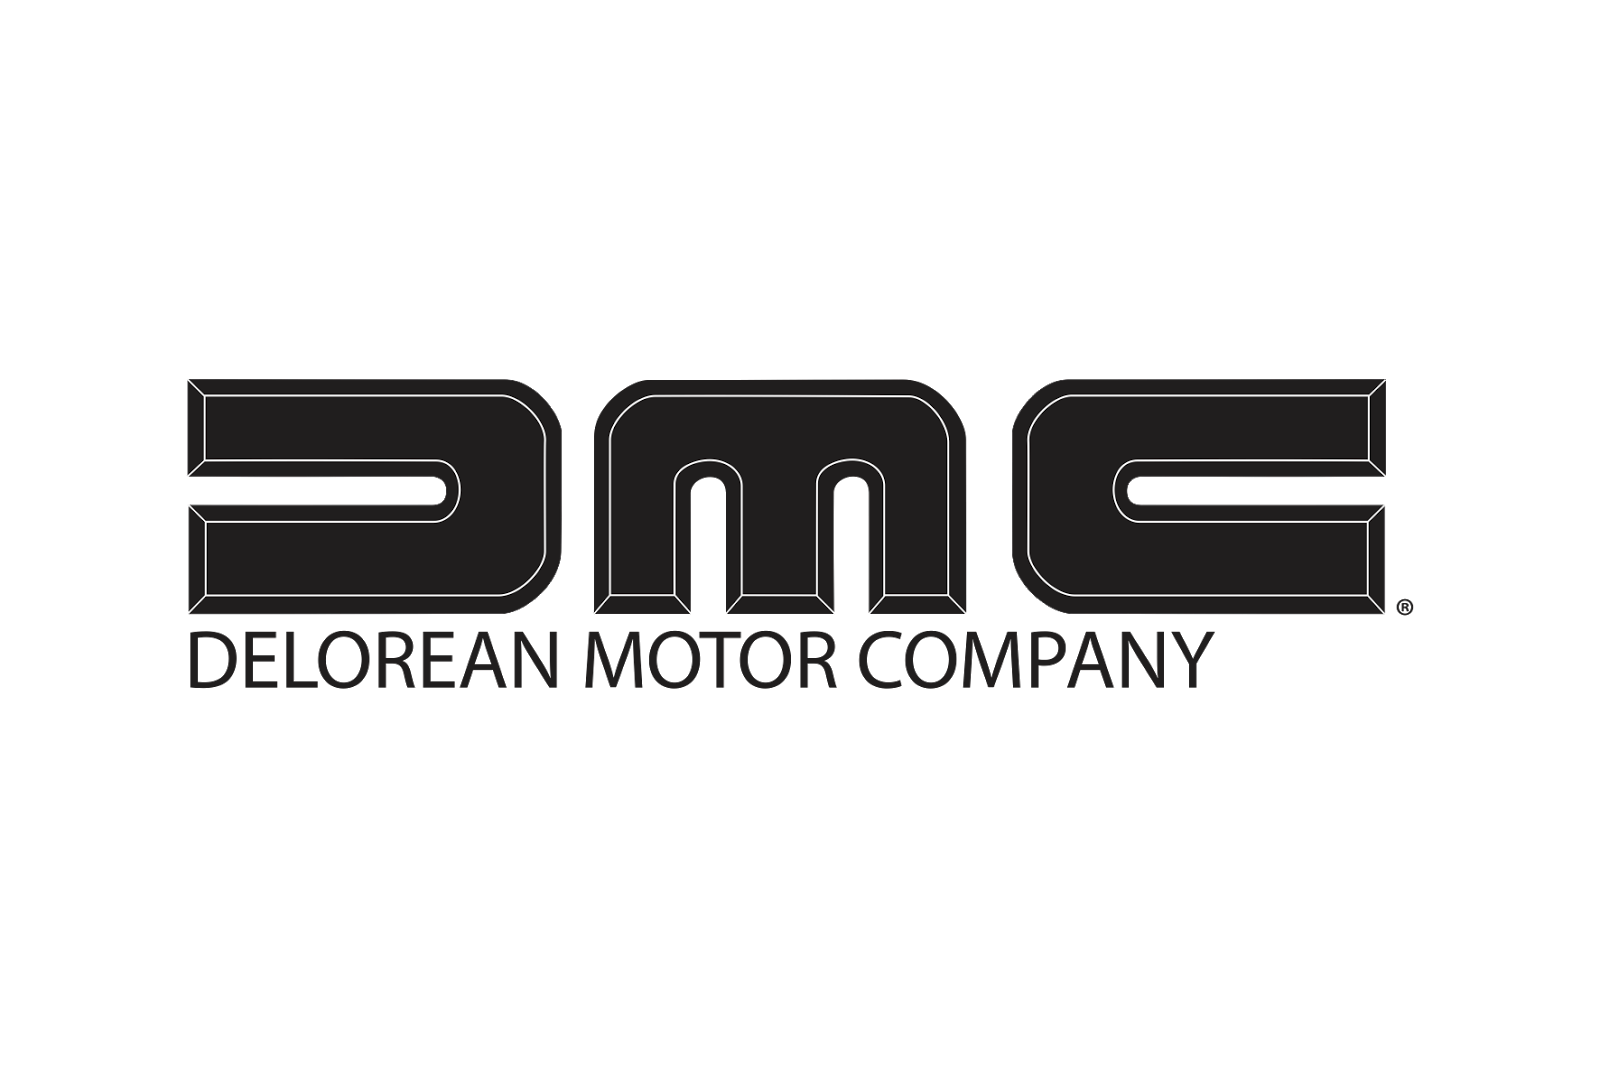 delorean motor company logo. Black Bedroom Furniture Sets. Home Design Ideas